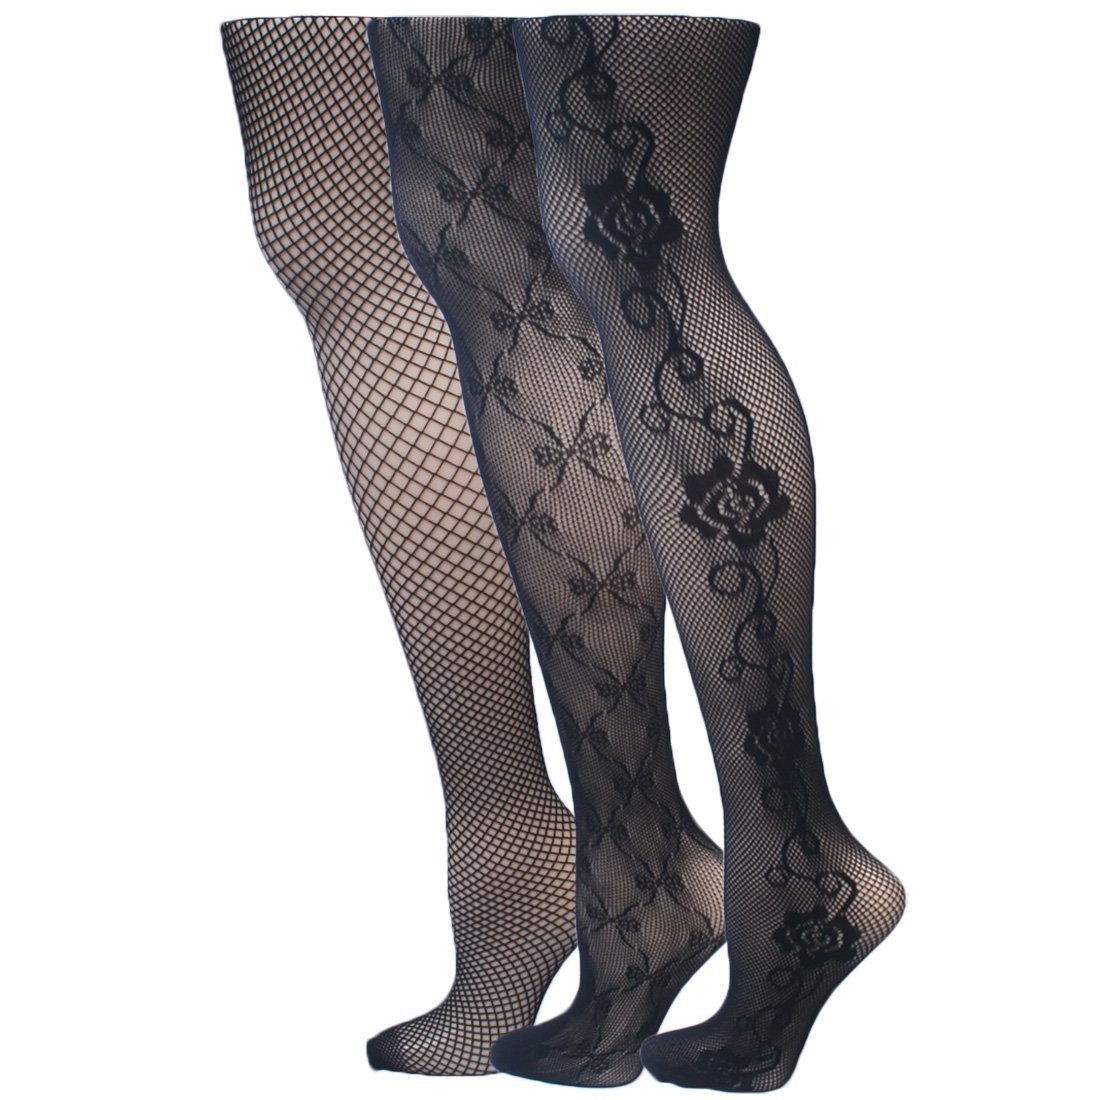 kilofly Sheer Patterned Pantyhose, Value Pack - Set of 3 Assorted Designs